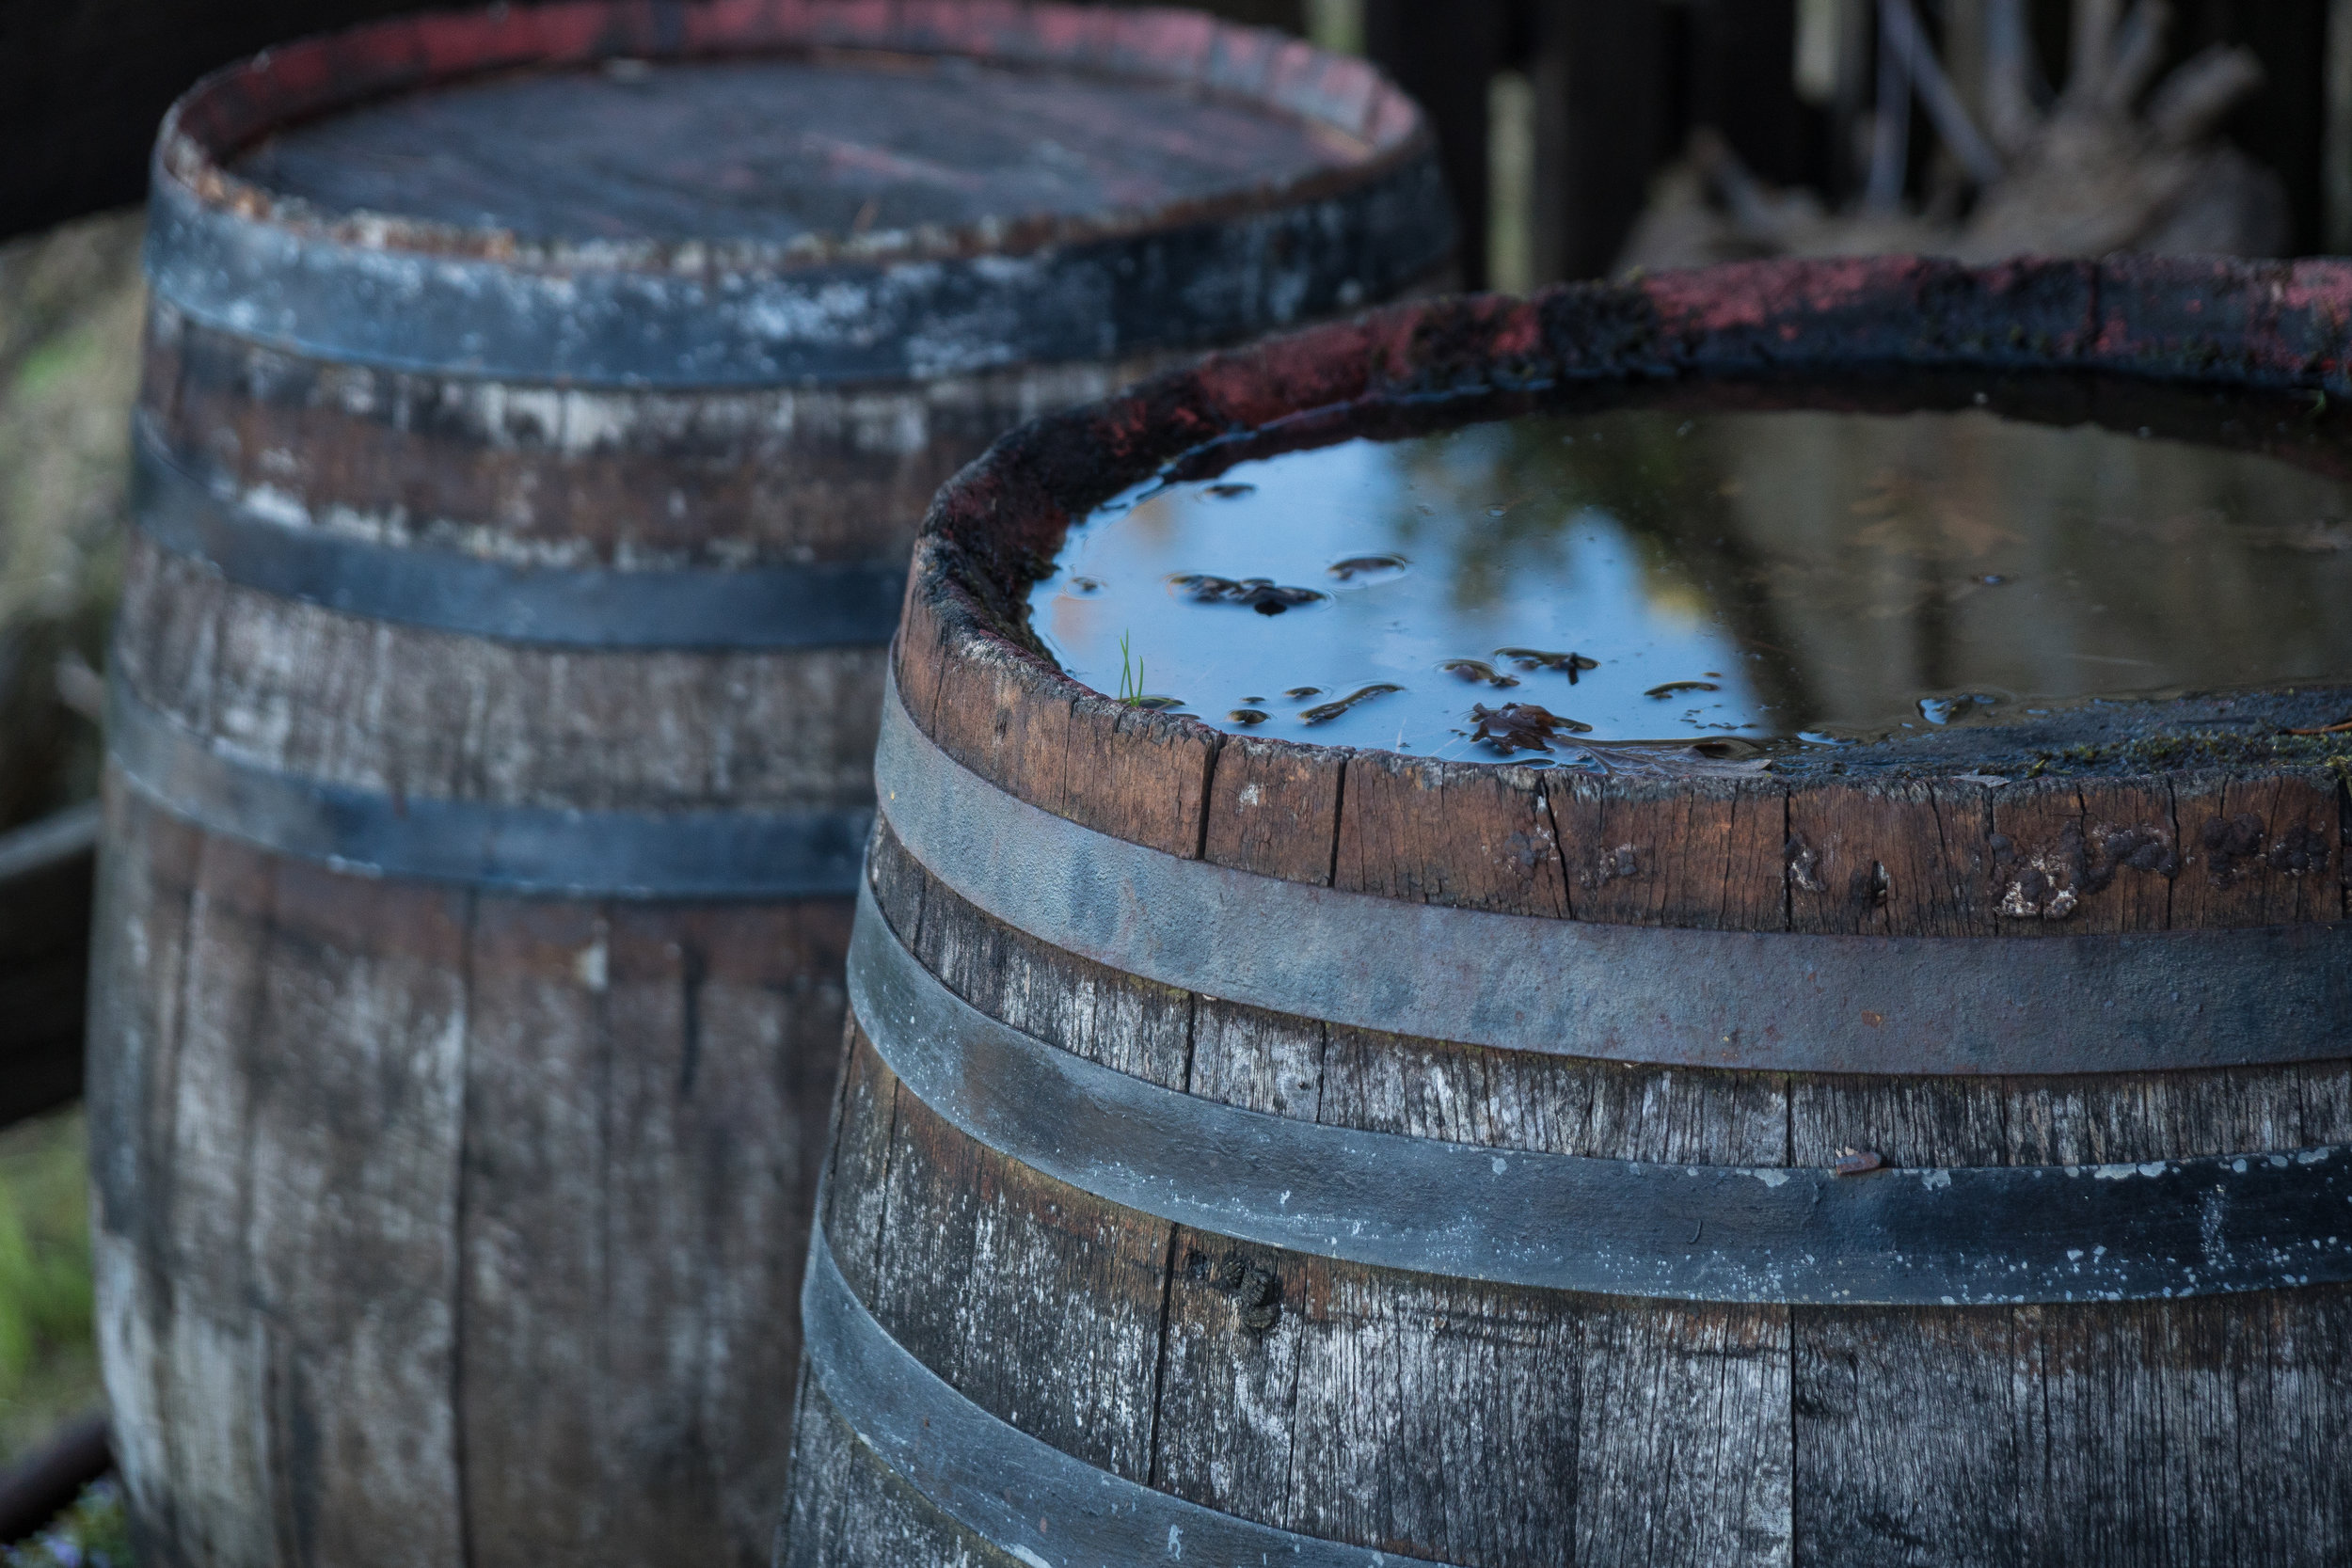 Handcrafted Fountain Pens From Pitlochry Whisky Barrels -